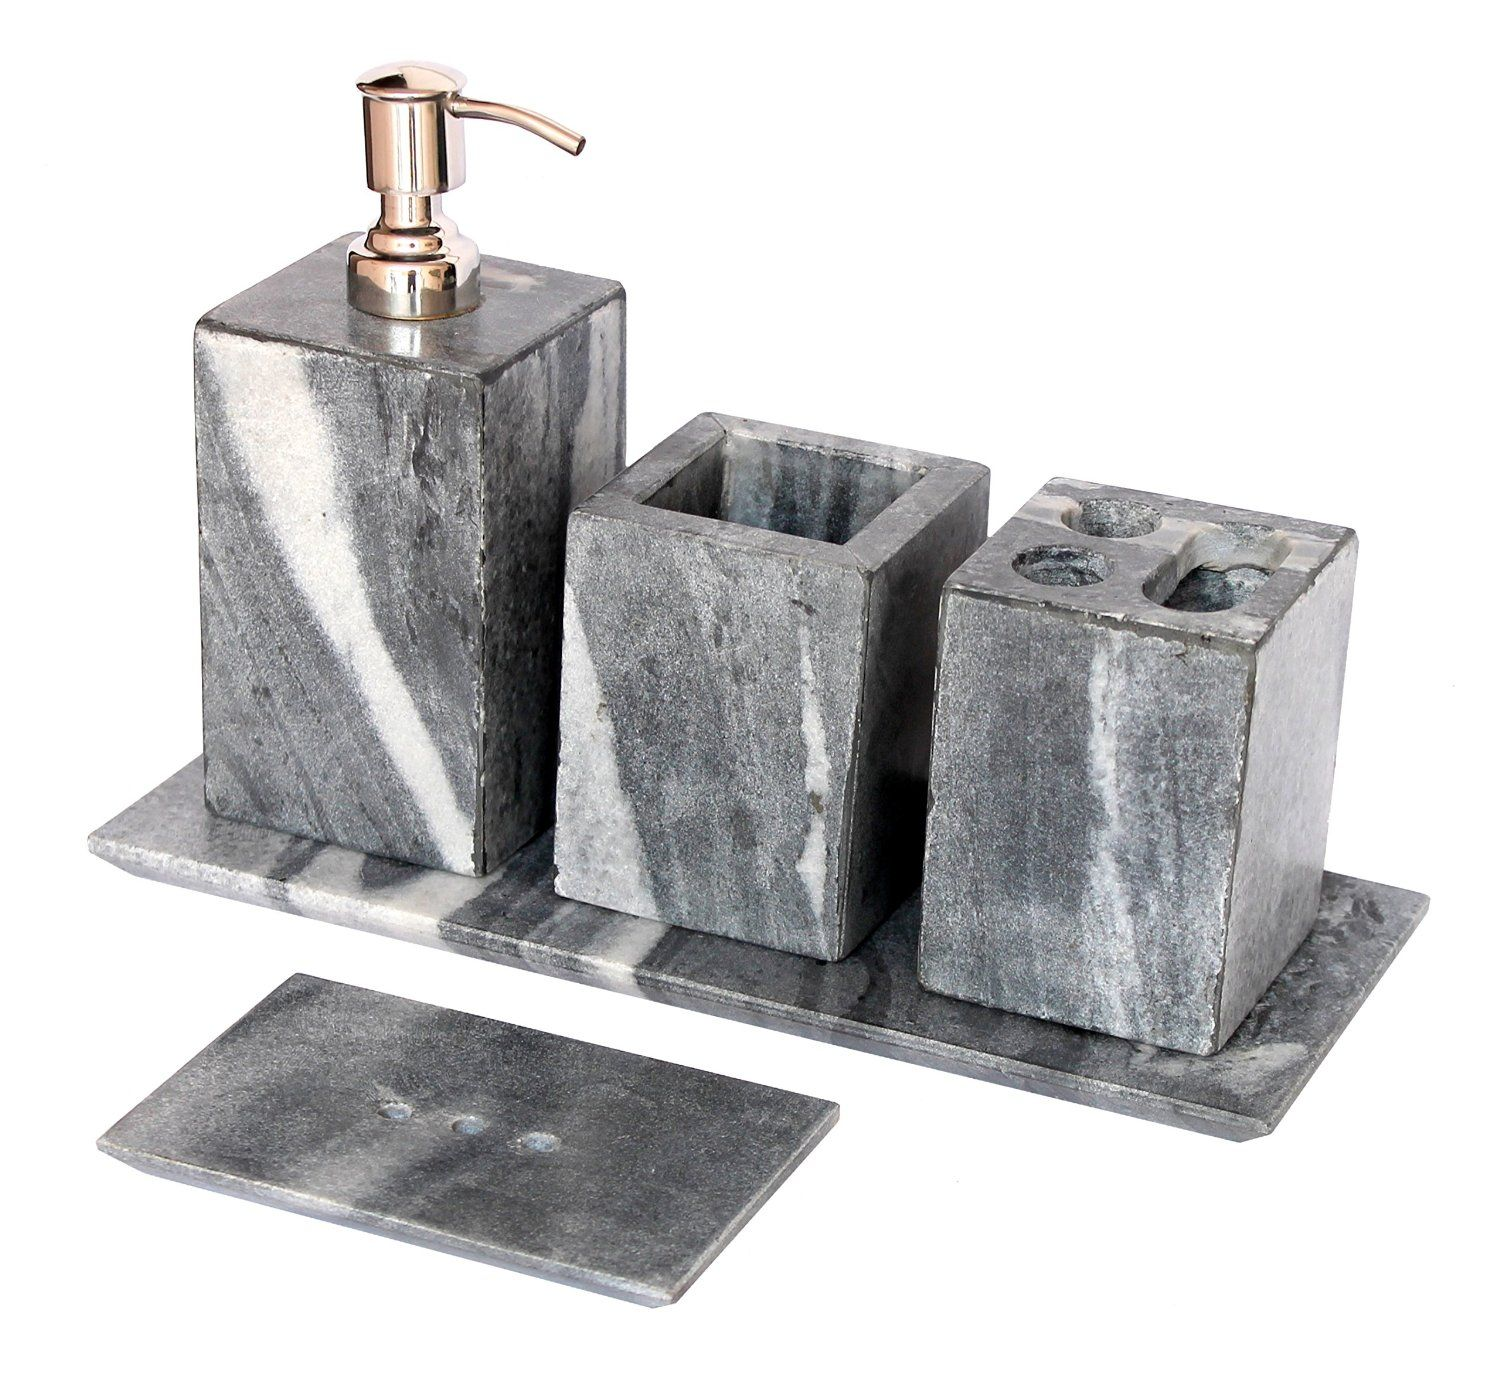 5 Piece Set Of Natural Stone Made Bathroom Accessories With Soap Dispenser Dish Toothbrush And Toothpaste Holder More Get